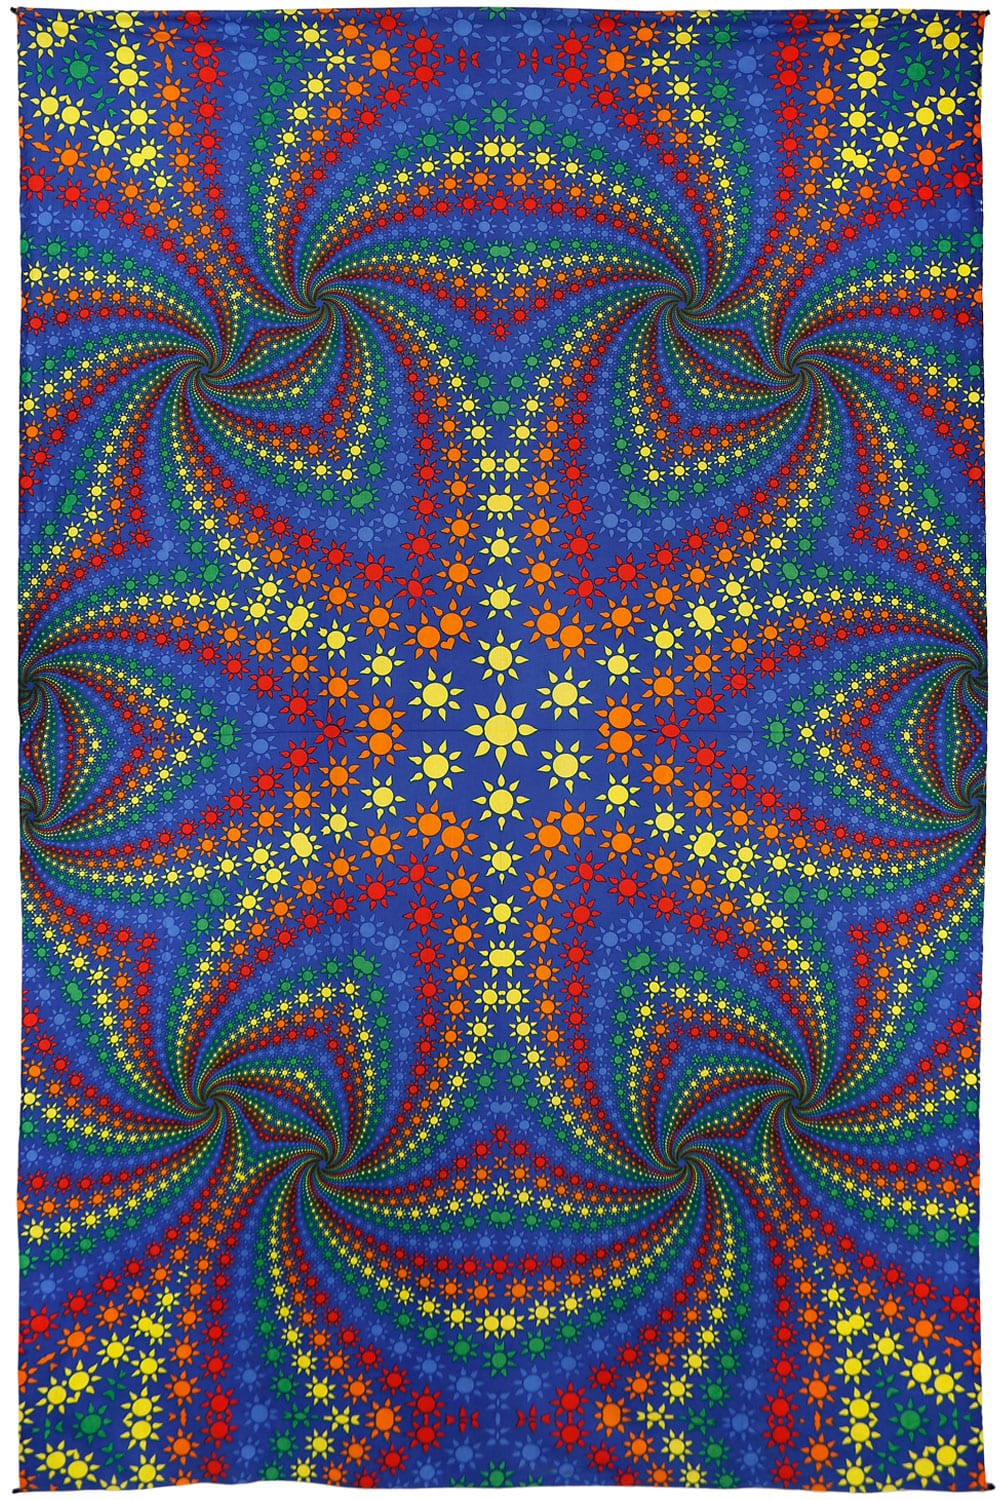 3d Twisted Rainbow Suns Tapestry Psychedelic Hippie Art